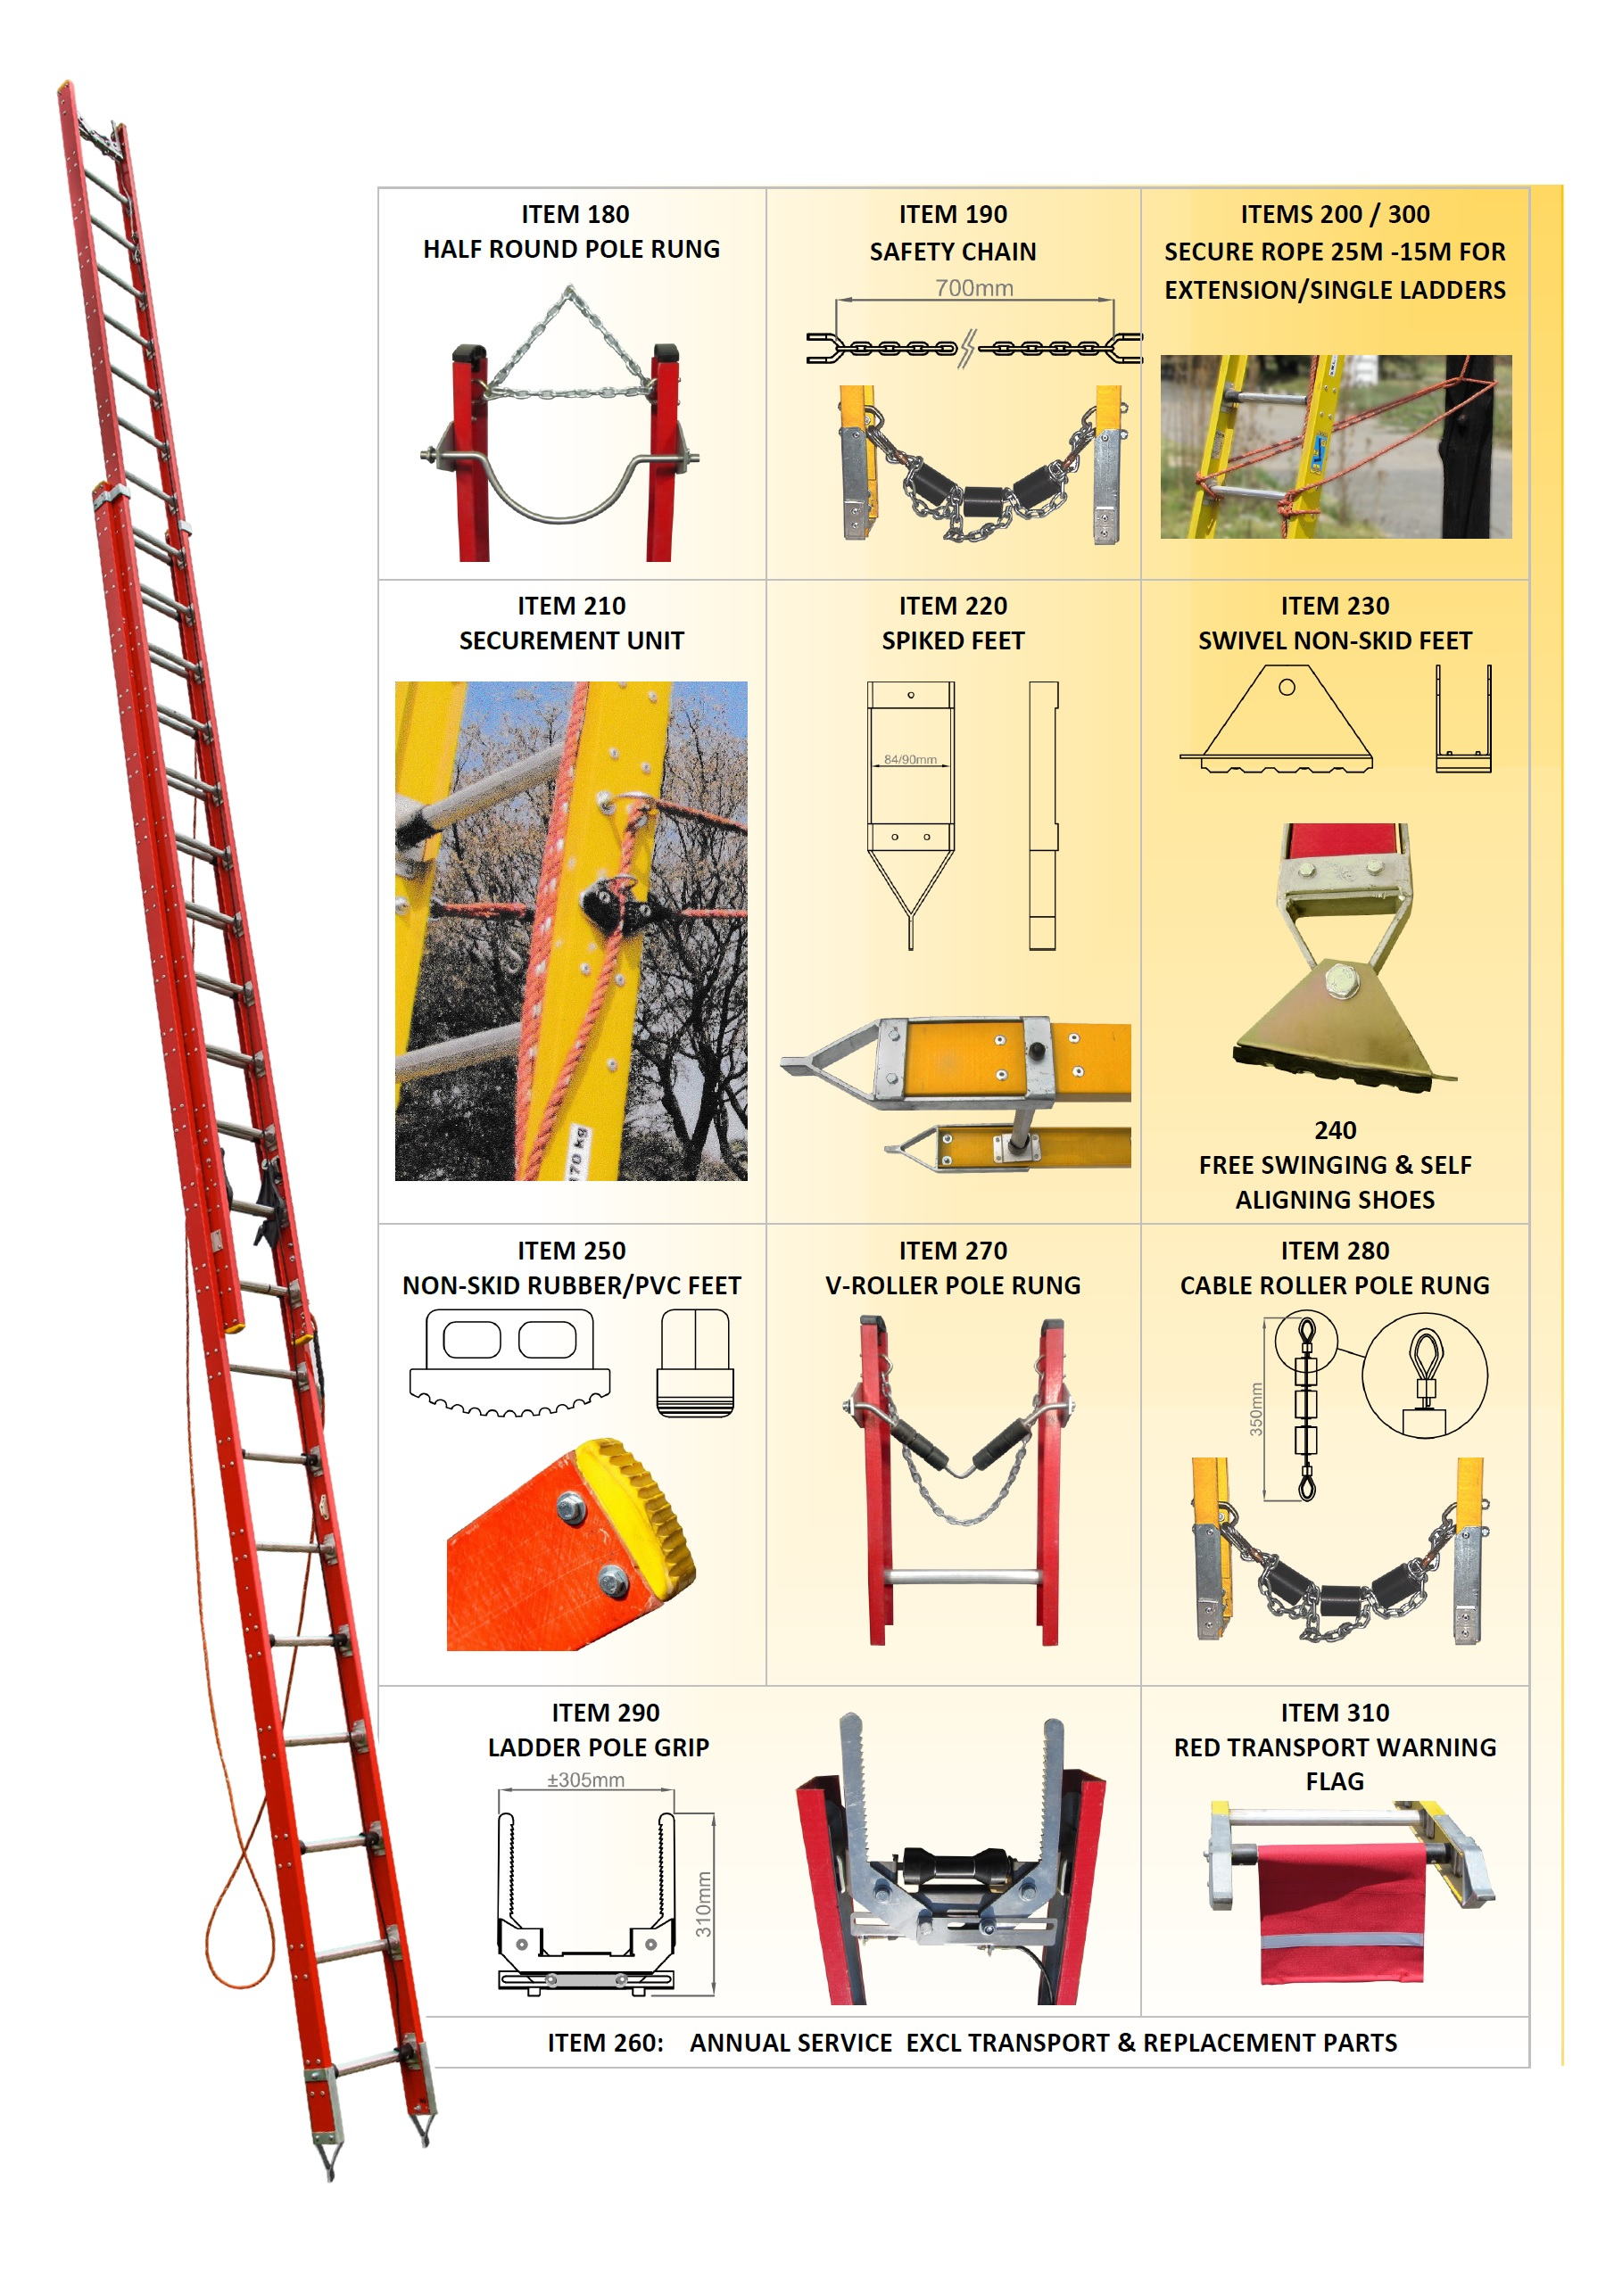 Christensen Fibreglass extension ladder ESKOM CONTRACT 4600055